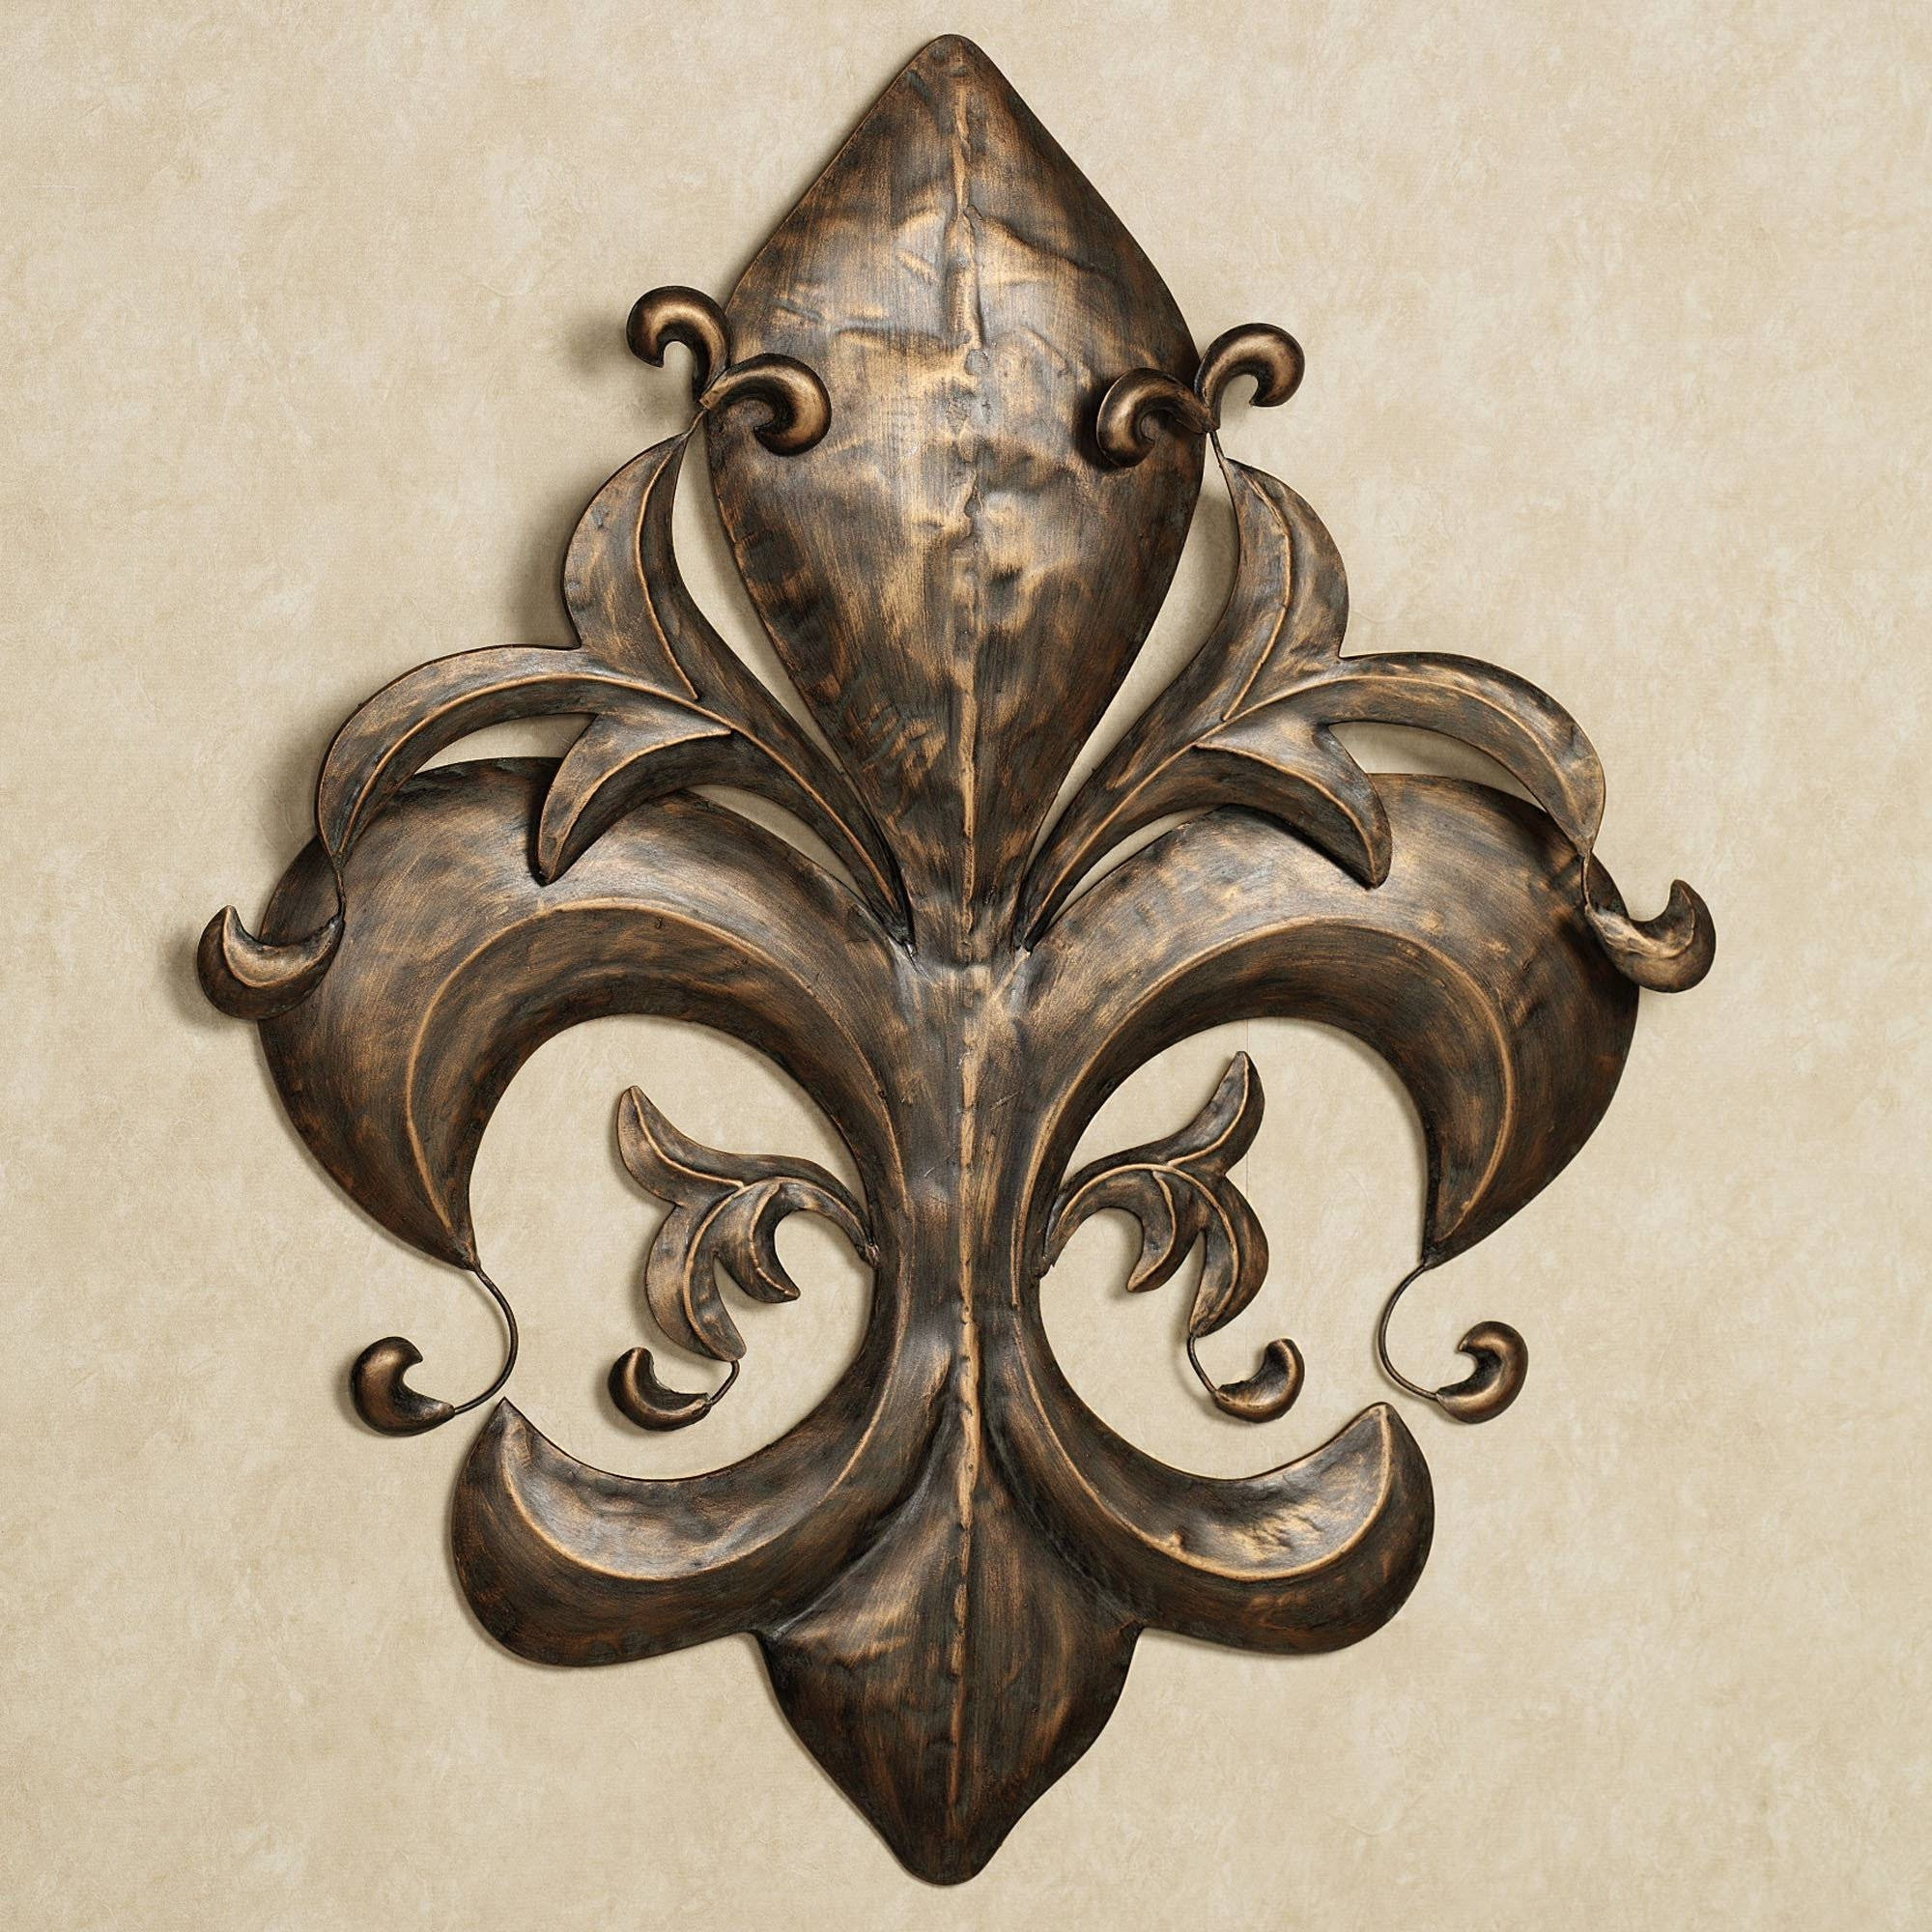 Fleur De Lis Metal Wall Decor | Design Ideas And Decor Intended For Most Up To Date Fleur De Lis Metal Wall Art (View 2 of 25)